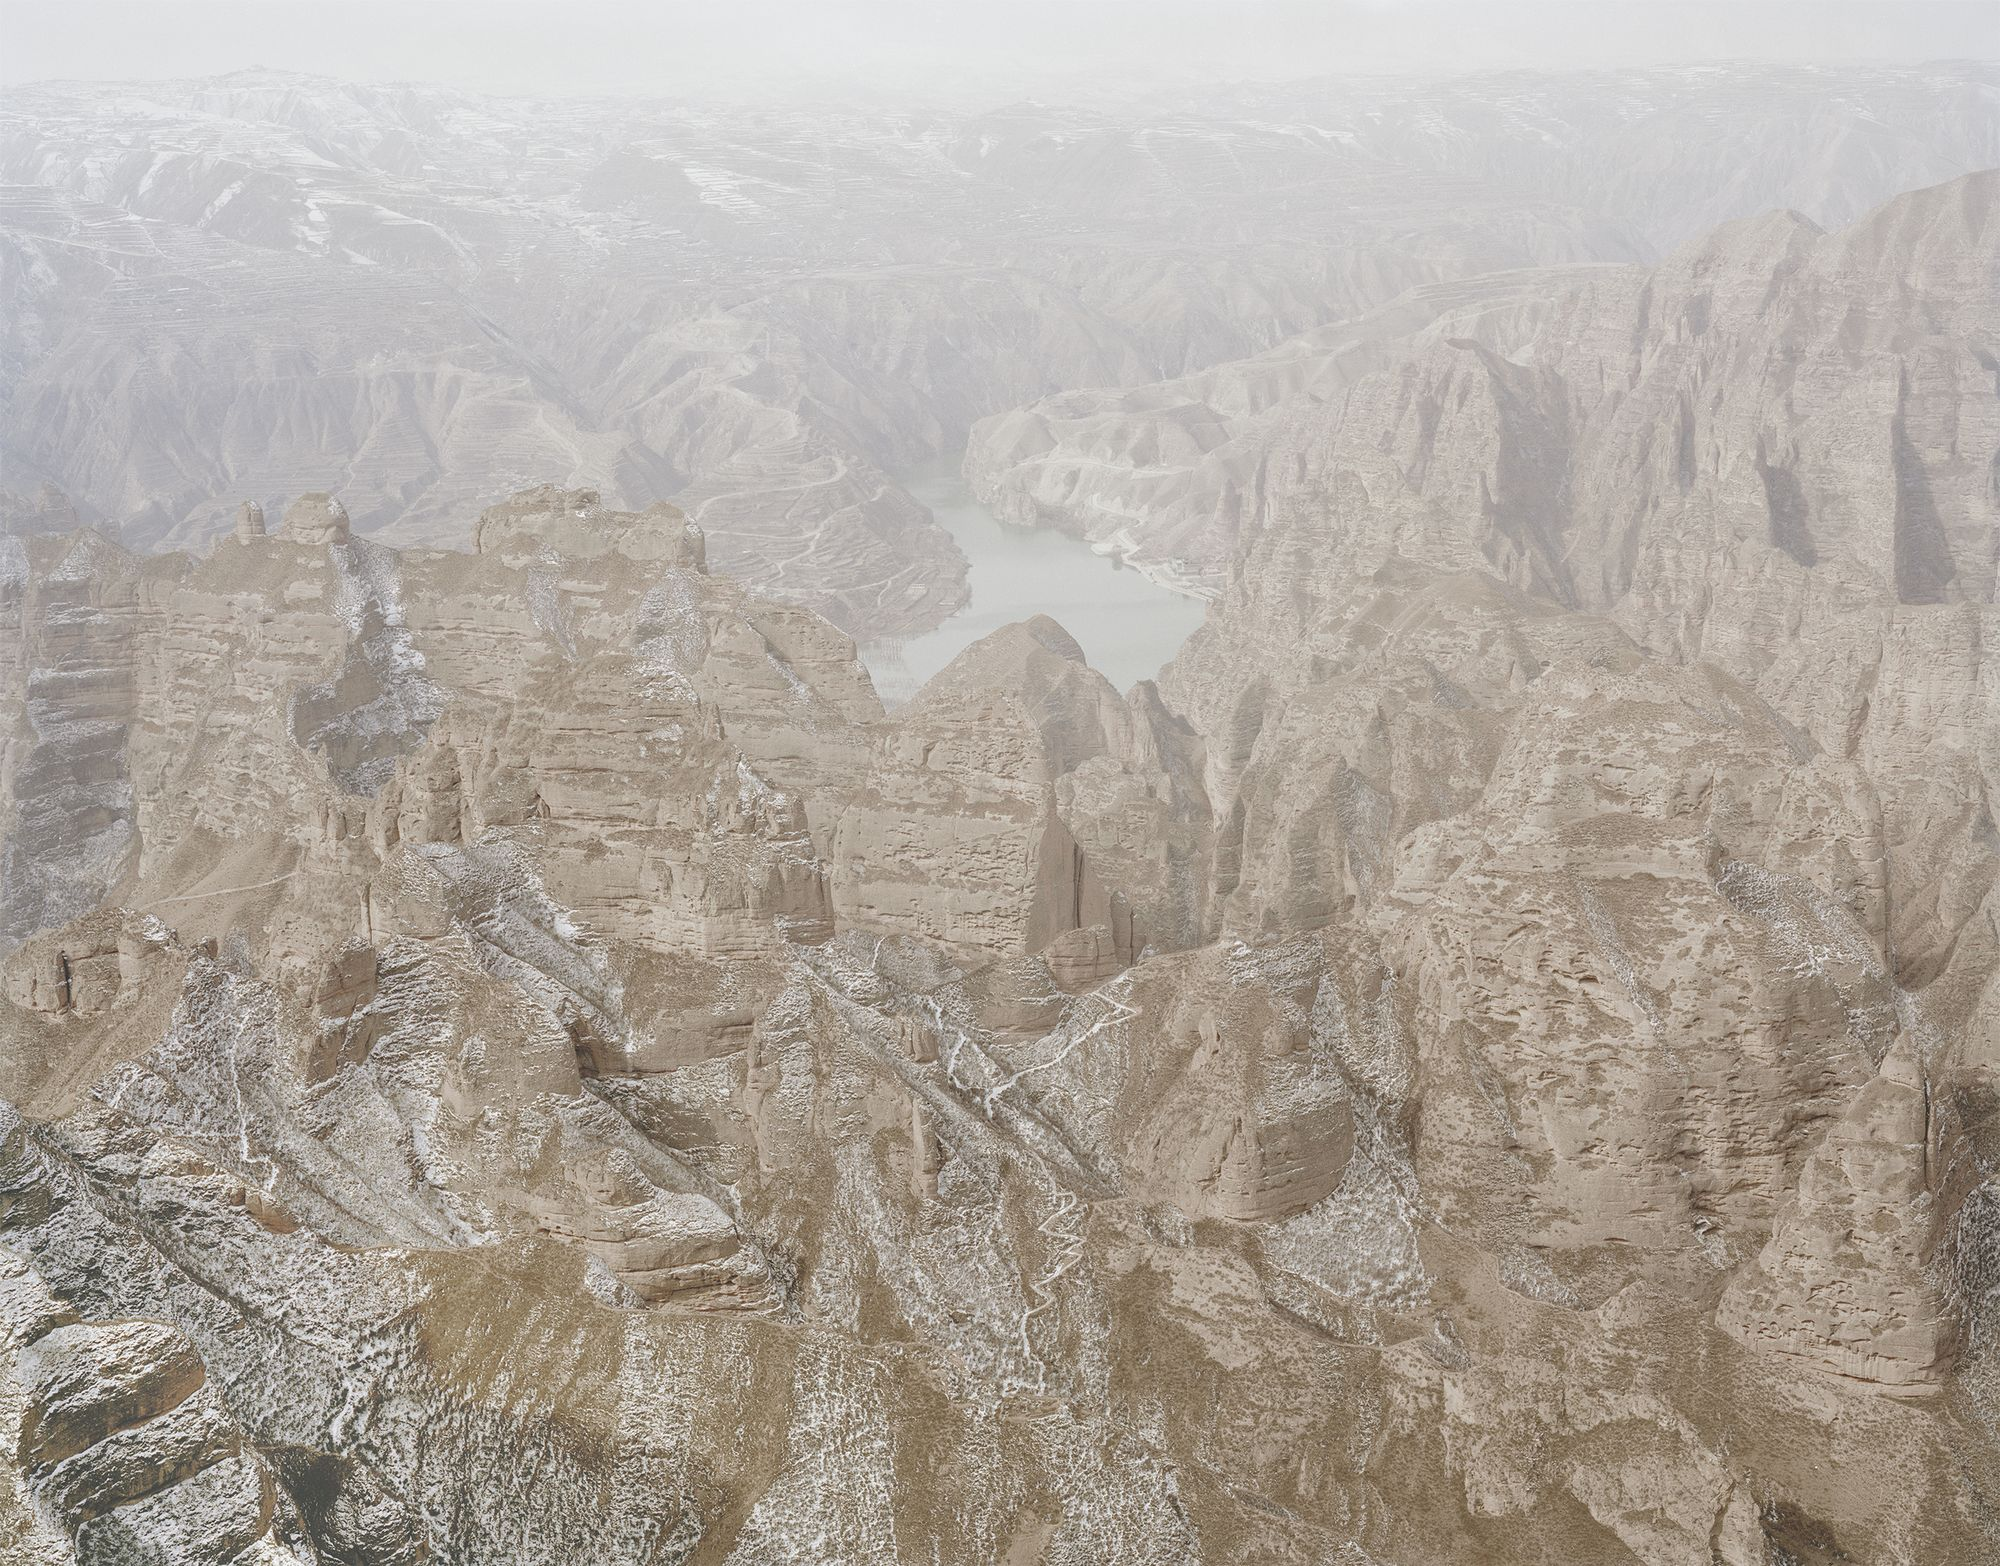 Zhang Kechun - Yellow River in the Middle of the Mountains, Gansu, 2011